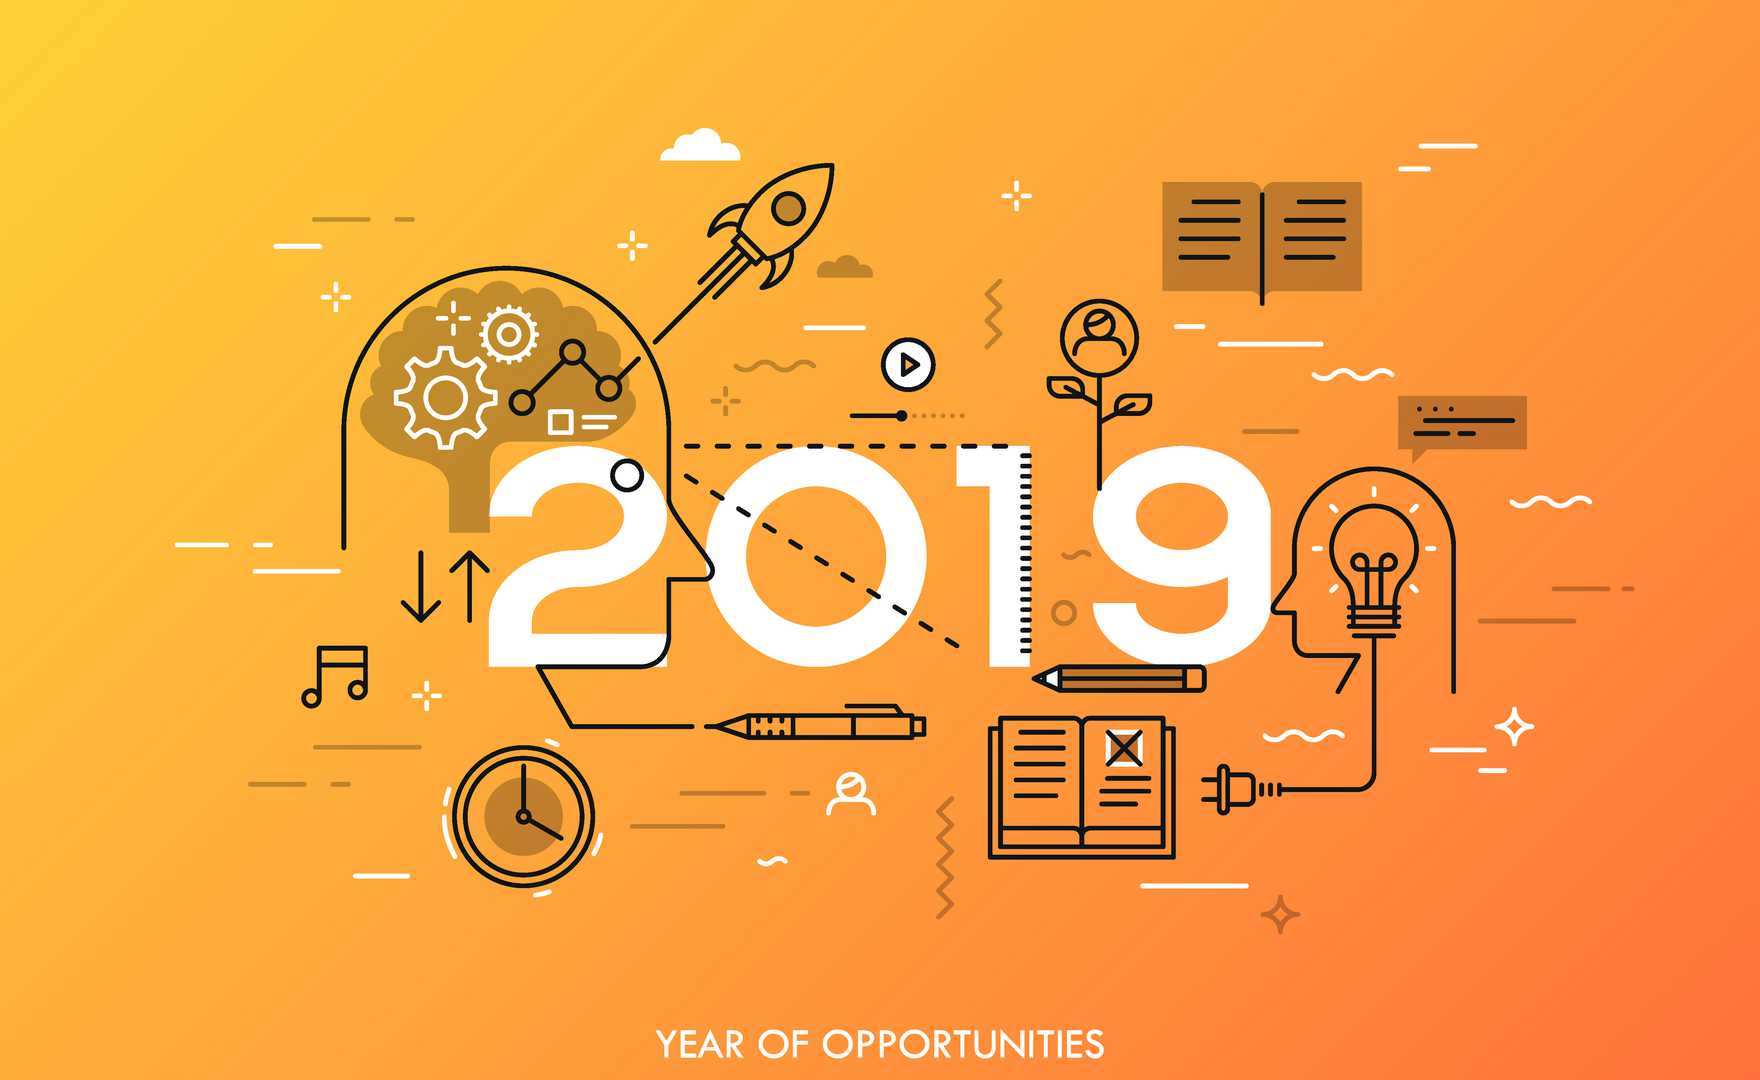 Three workplace trends to look out for in 2019